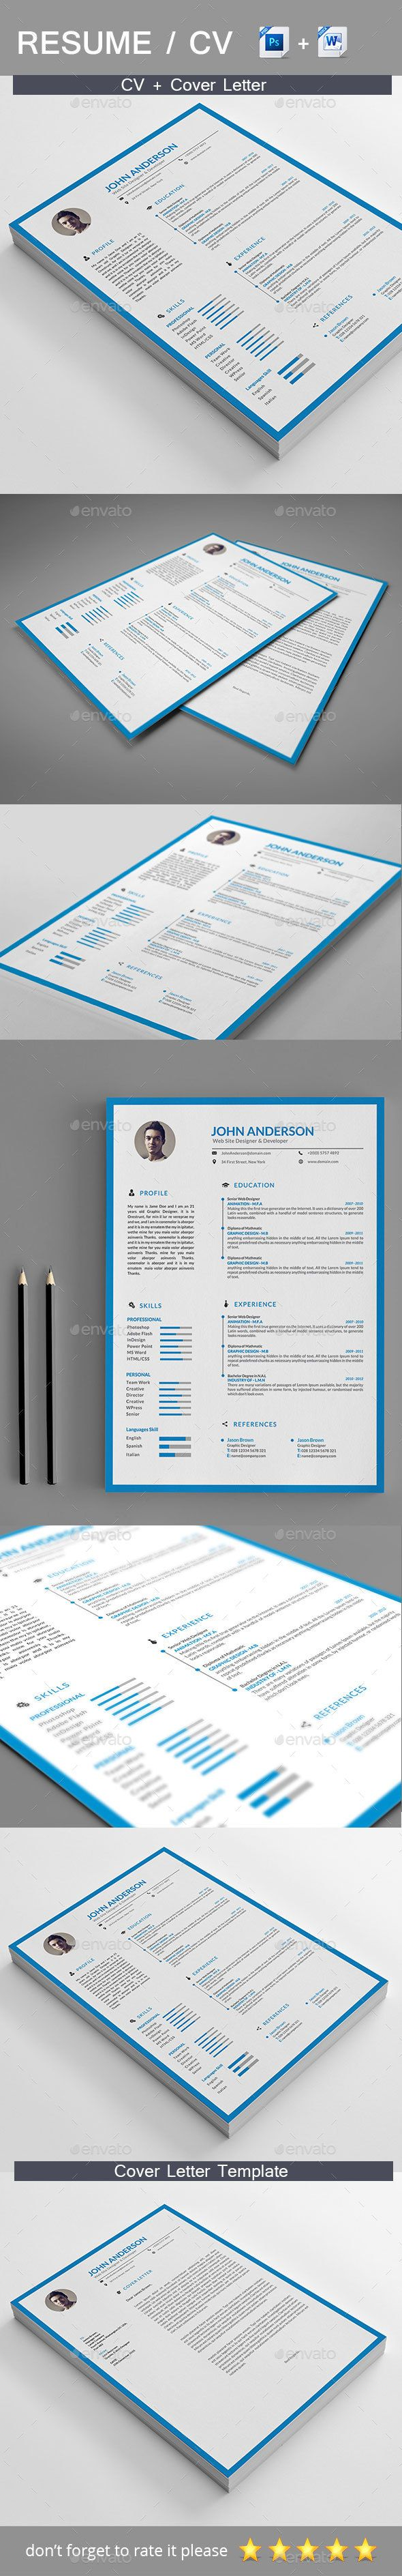 professional resume by realisticart the perfect way to make the best impression  strong